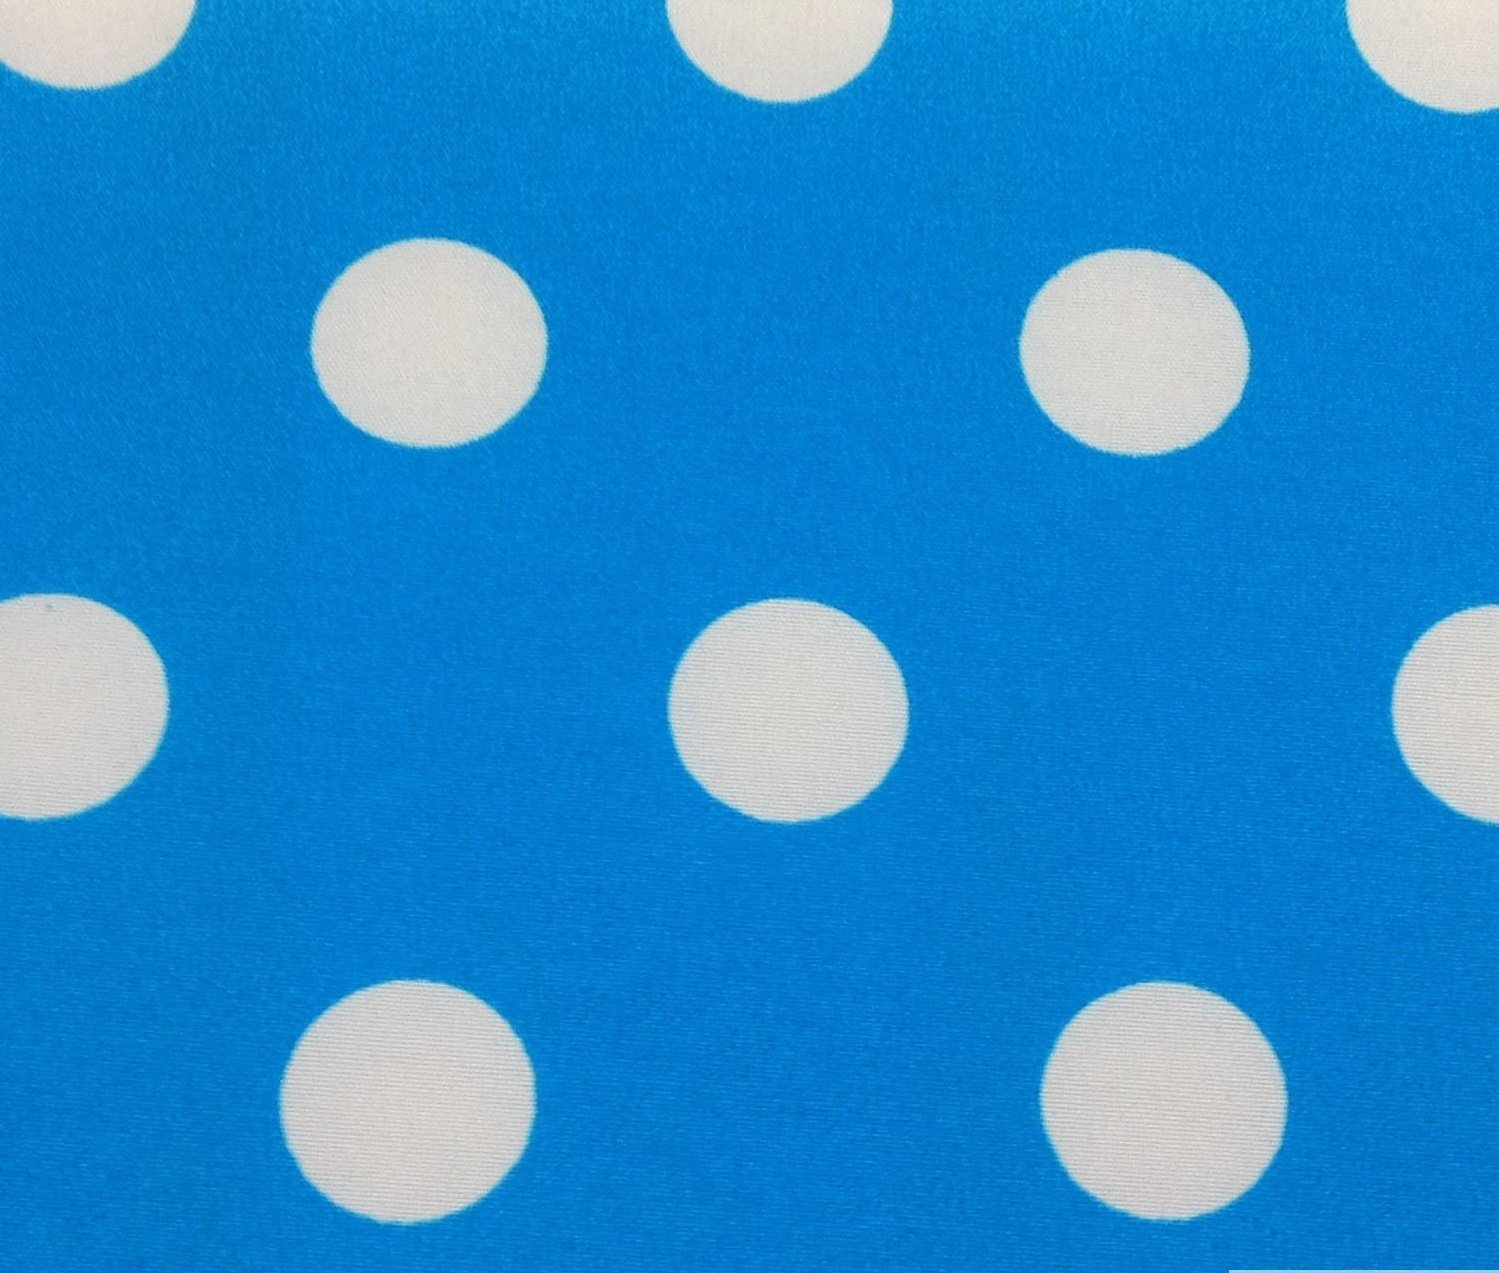 3/4th Inch Polka Dot Poly Cotton White Dot on Turquoise 60 Inch Fabric by the Yard (F.E.) by The Fabric Exchange   B00I55O4Z4